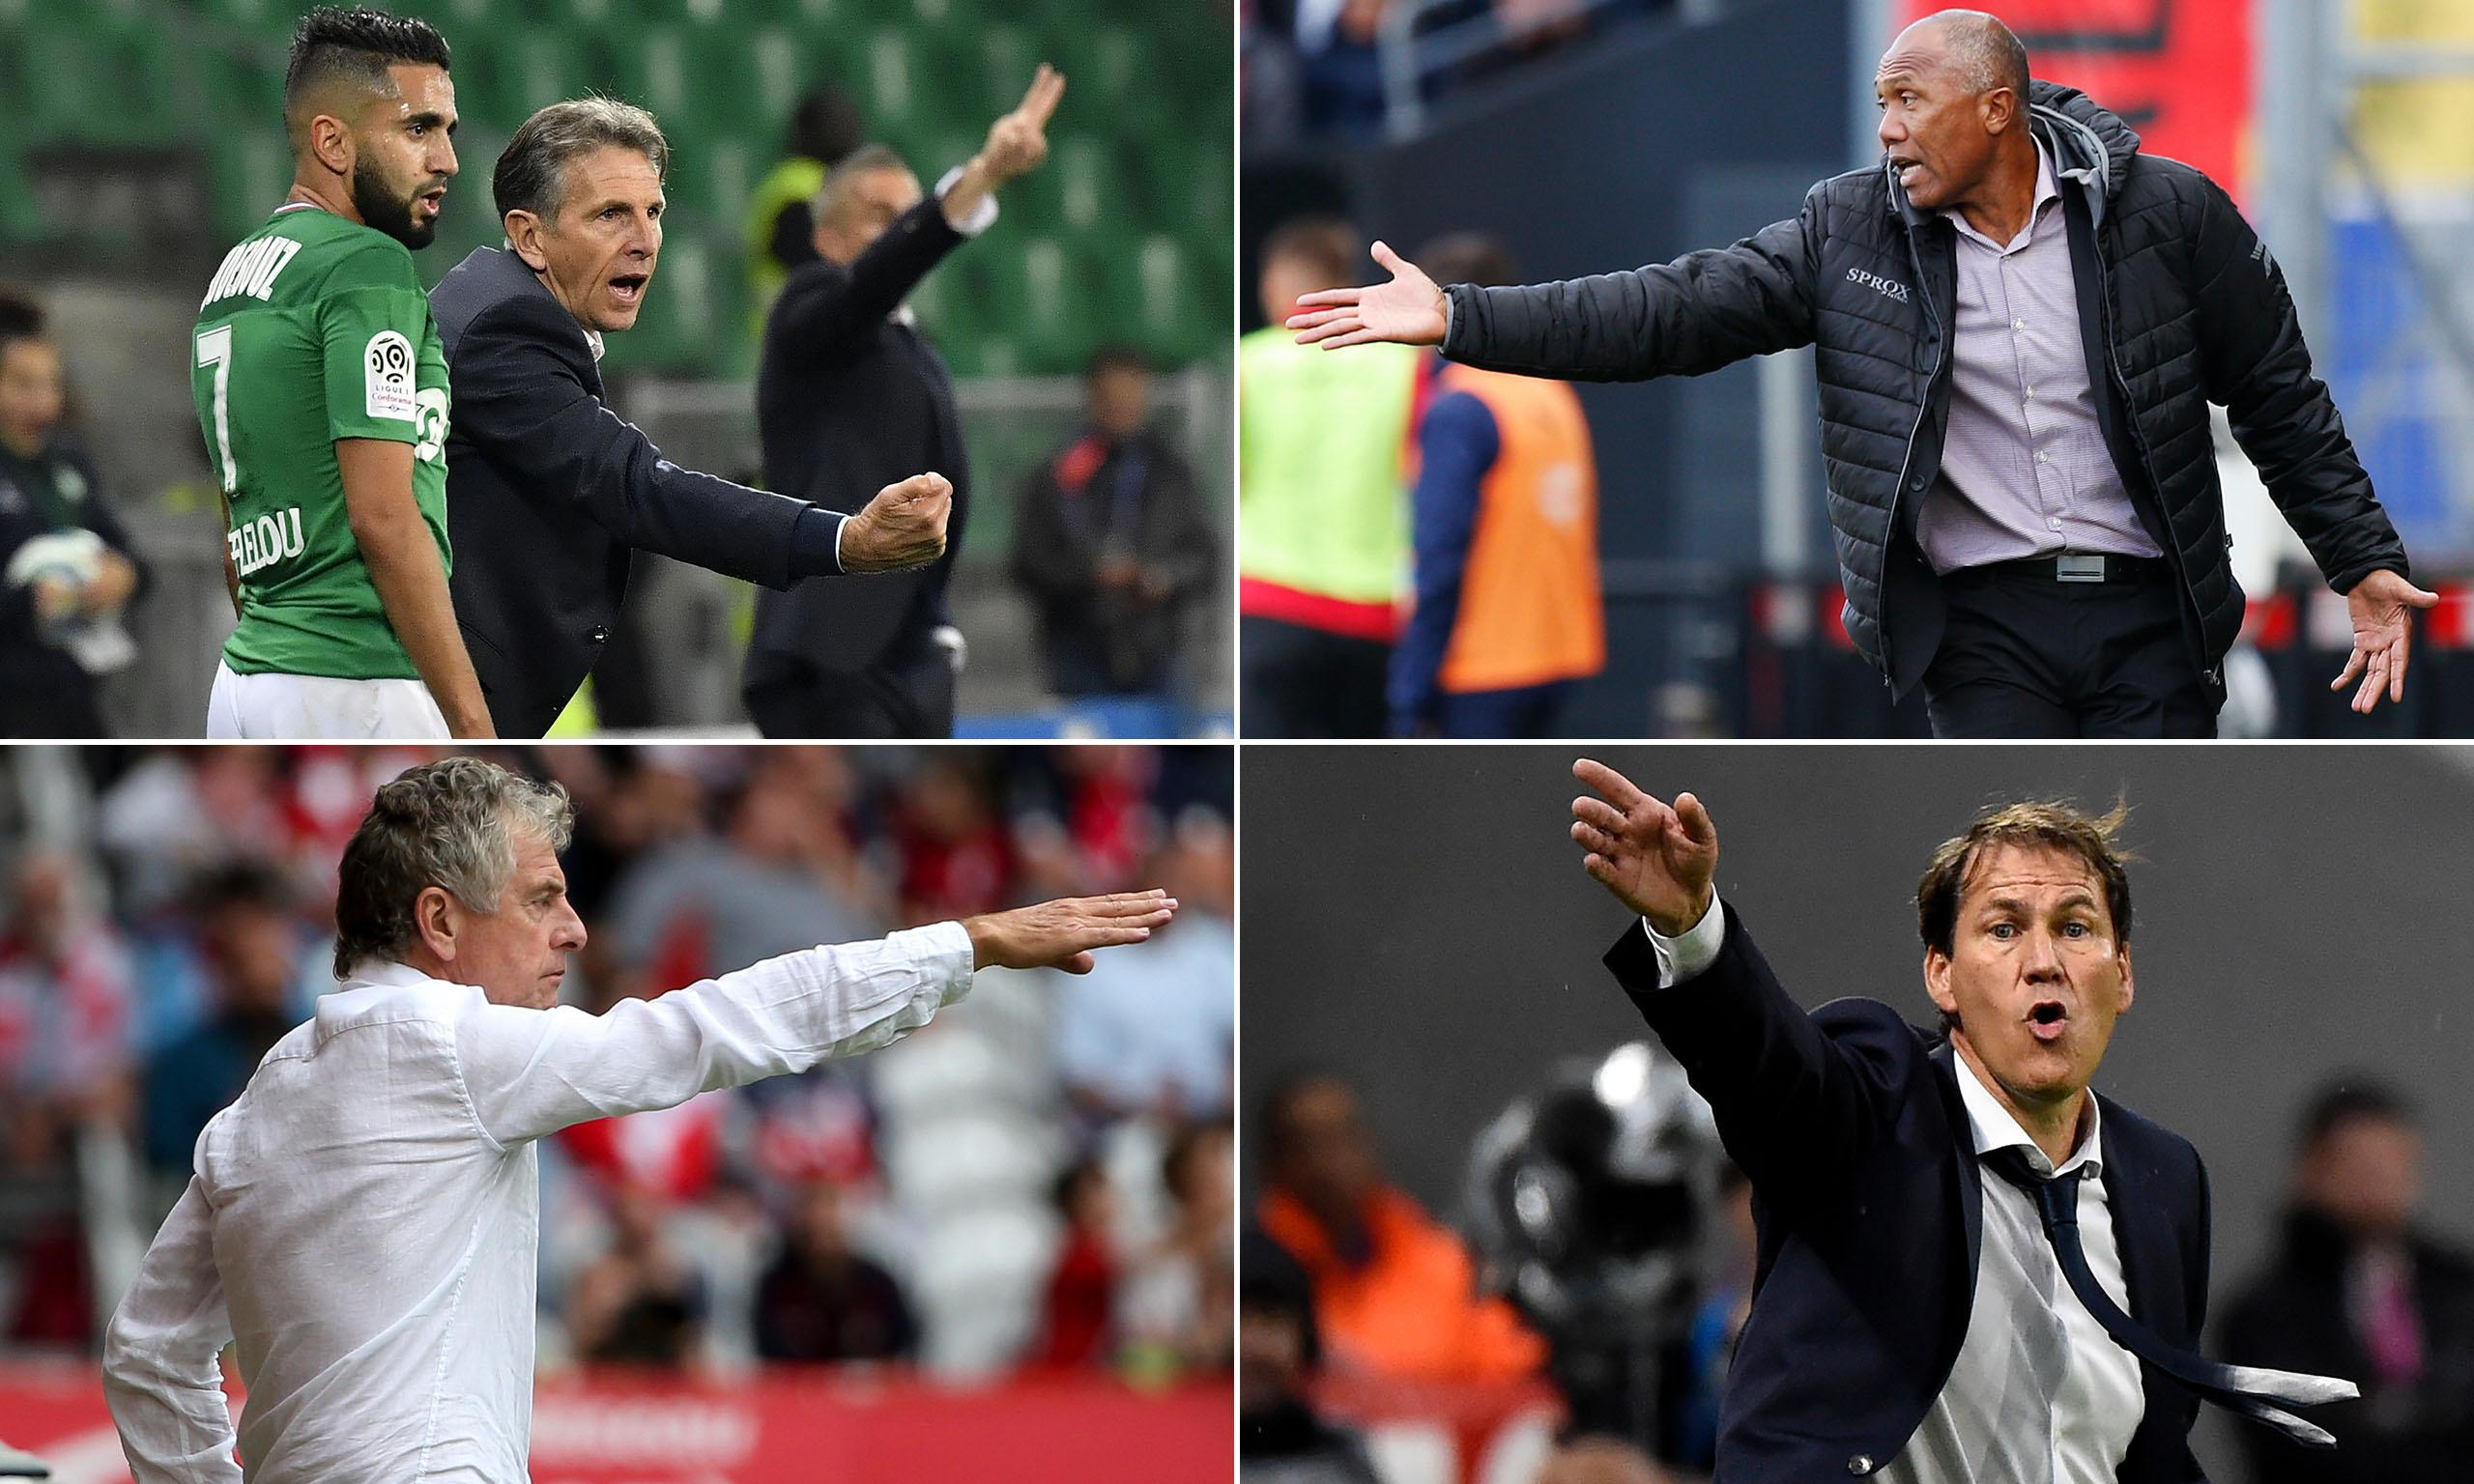 Ligue 1 clubs turn to experienced French managers to right wrongs